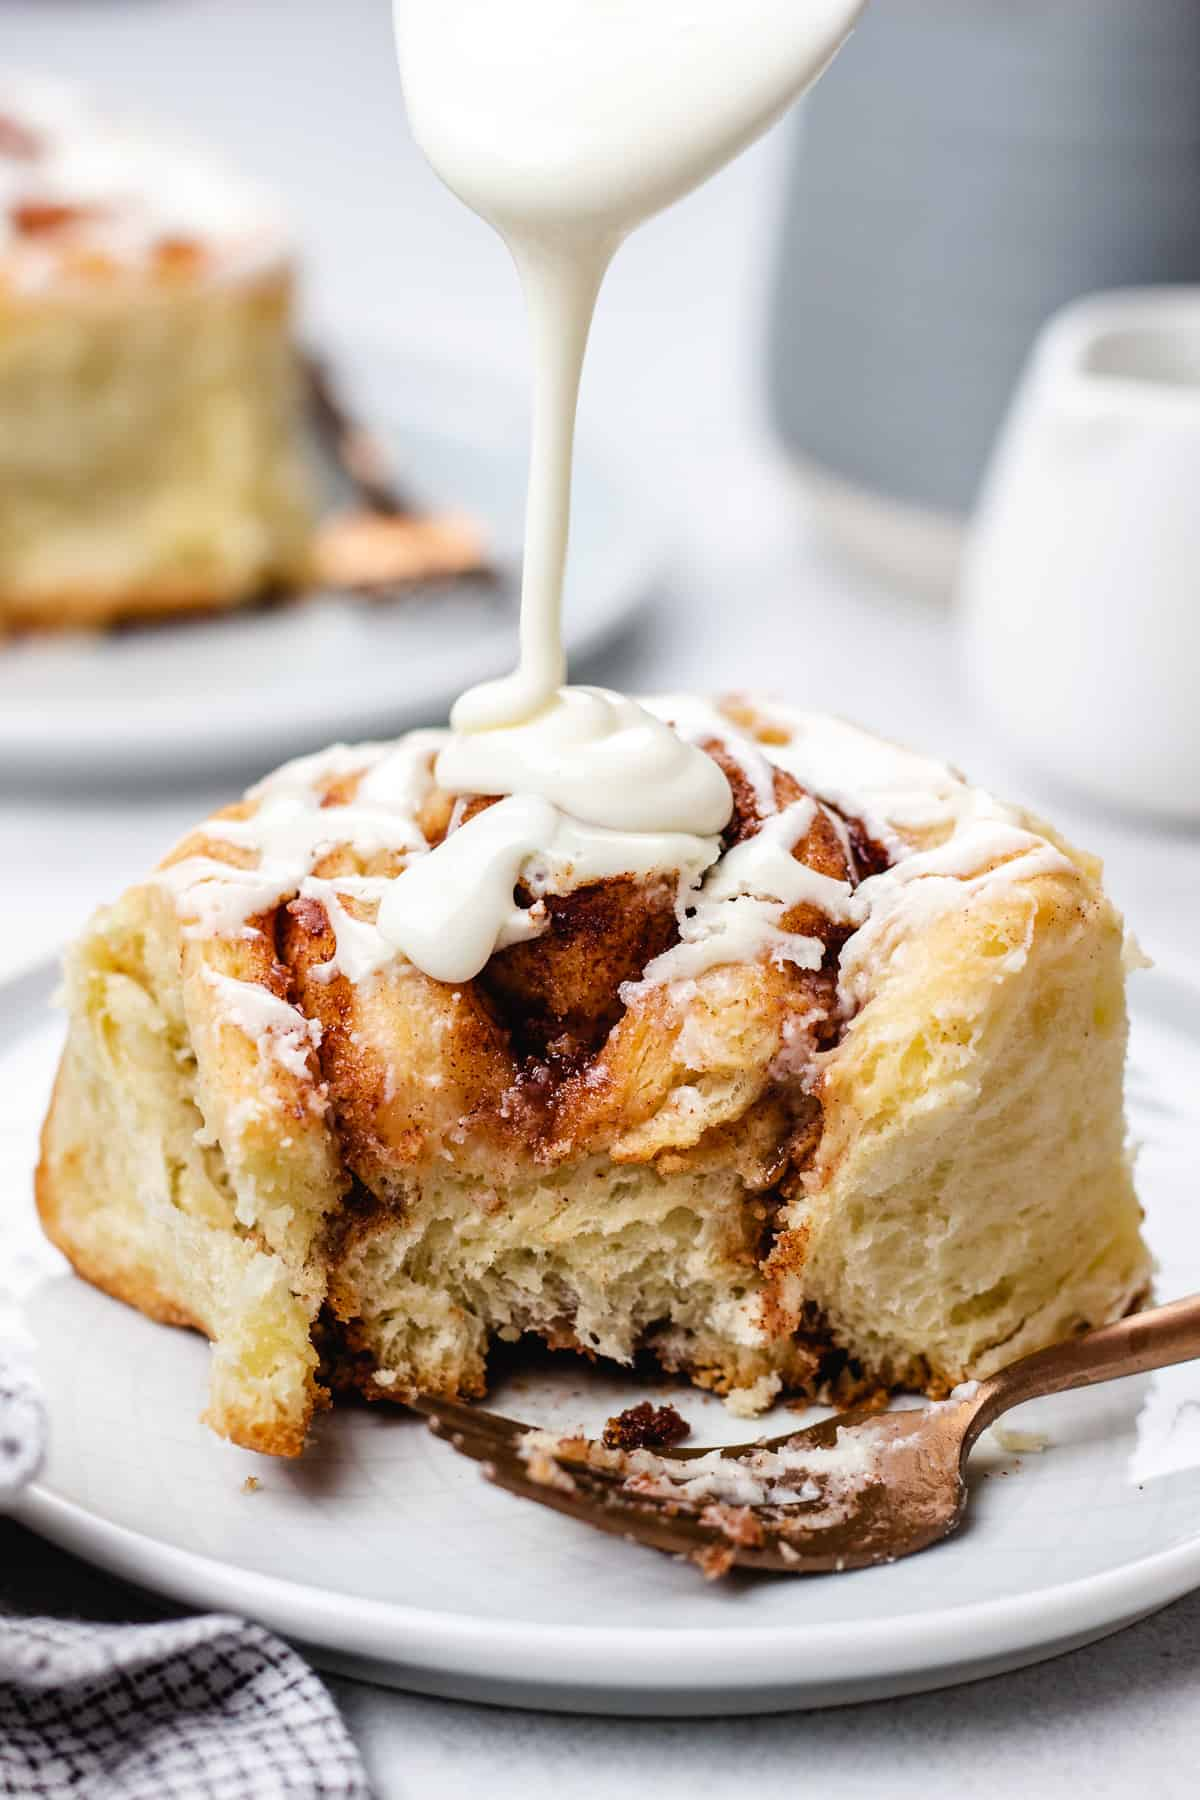 Pouring cream cheese icing over cinnamon roll.